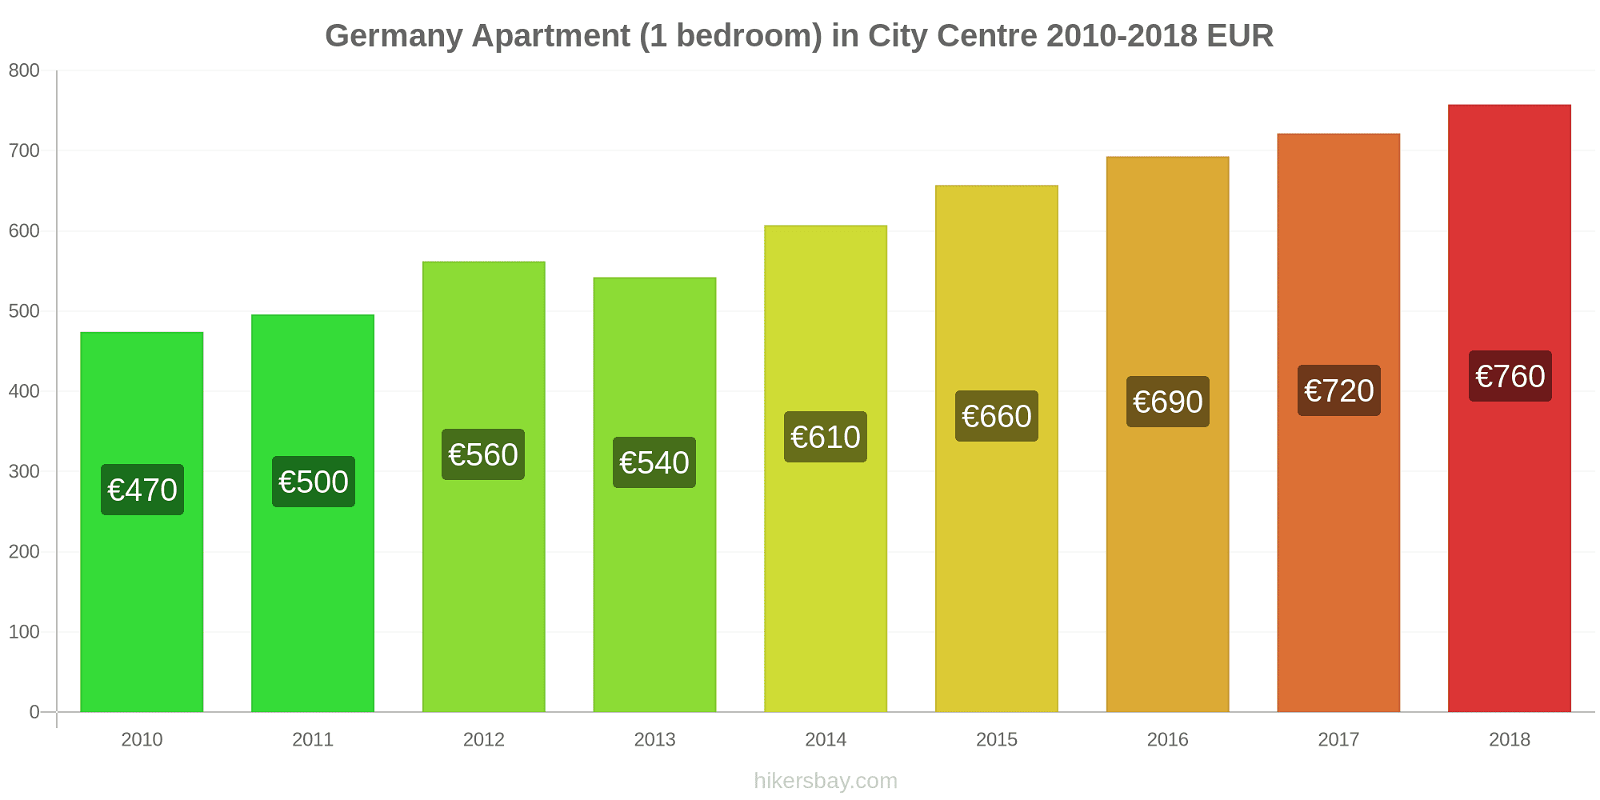 Germany price changes Apartment (1 bedroom) in City Centre hikersbay.com